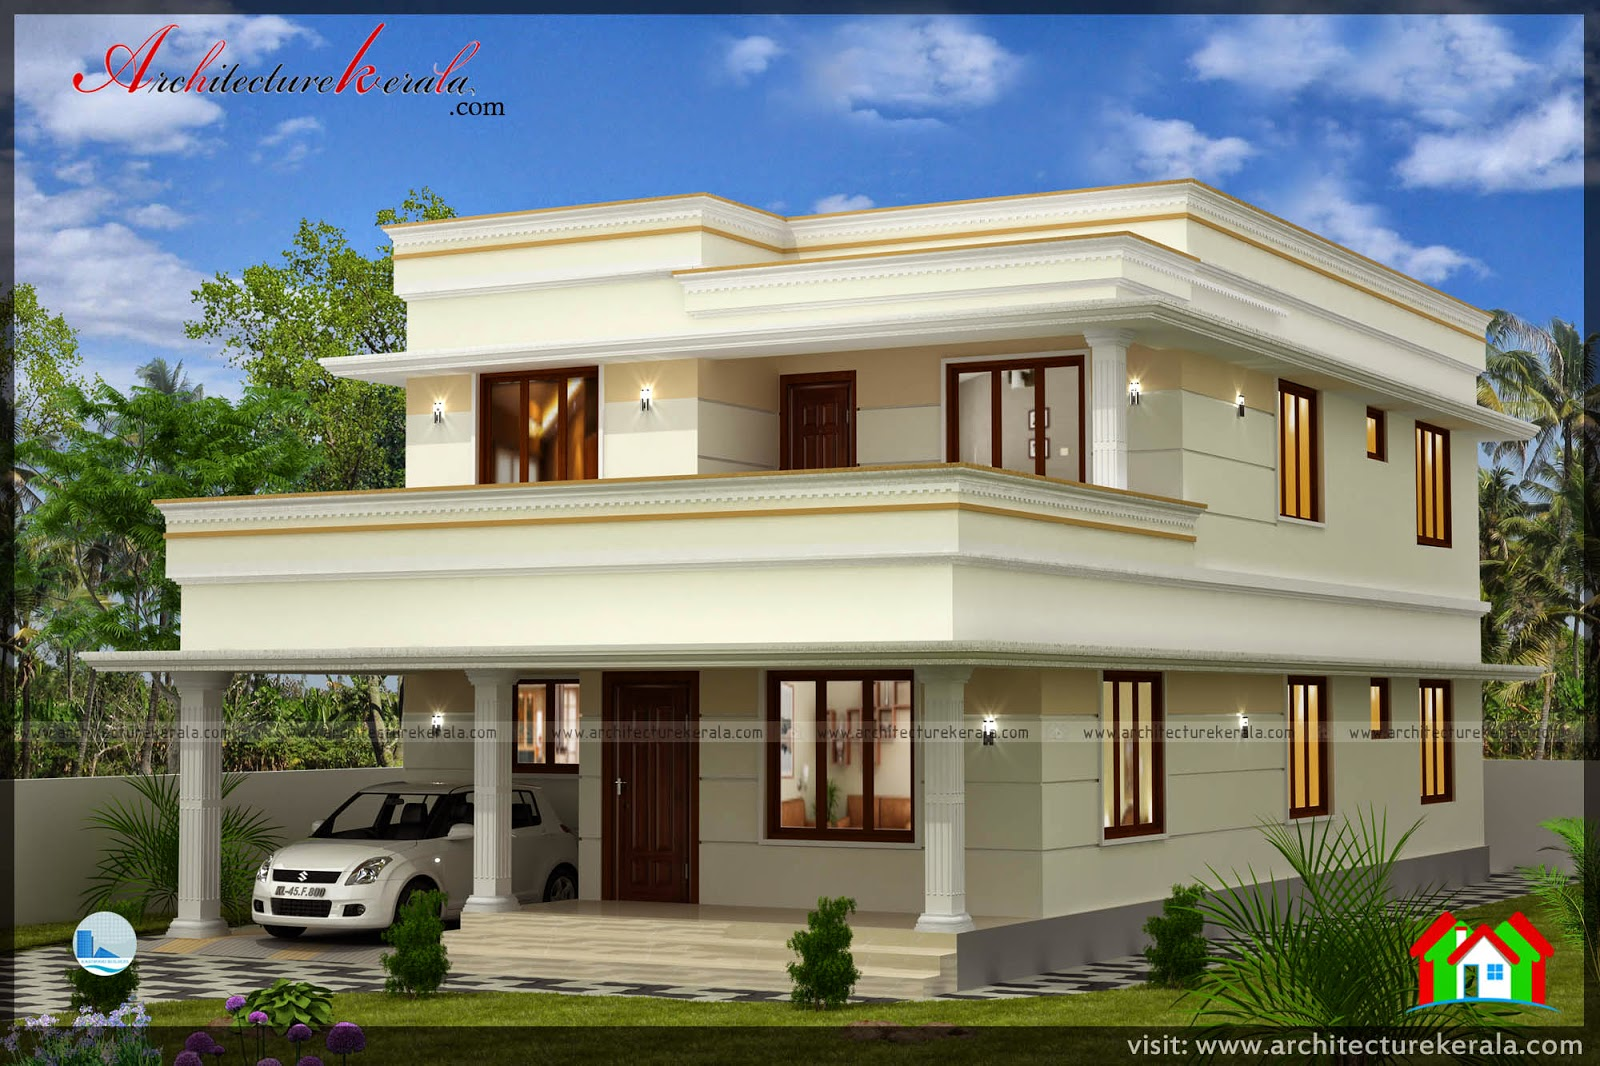 House plan 4 bedrooms architecture kerala for Architecture design kerala house